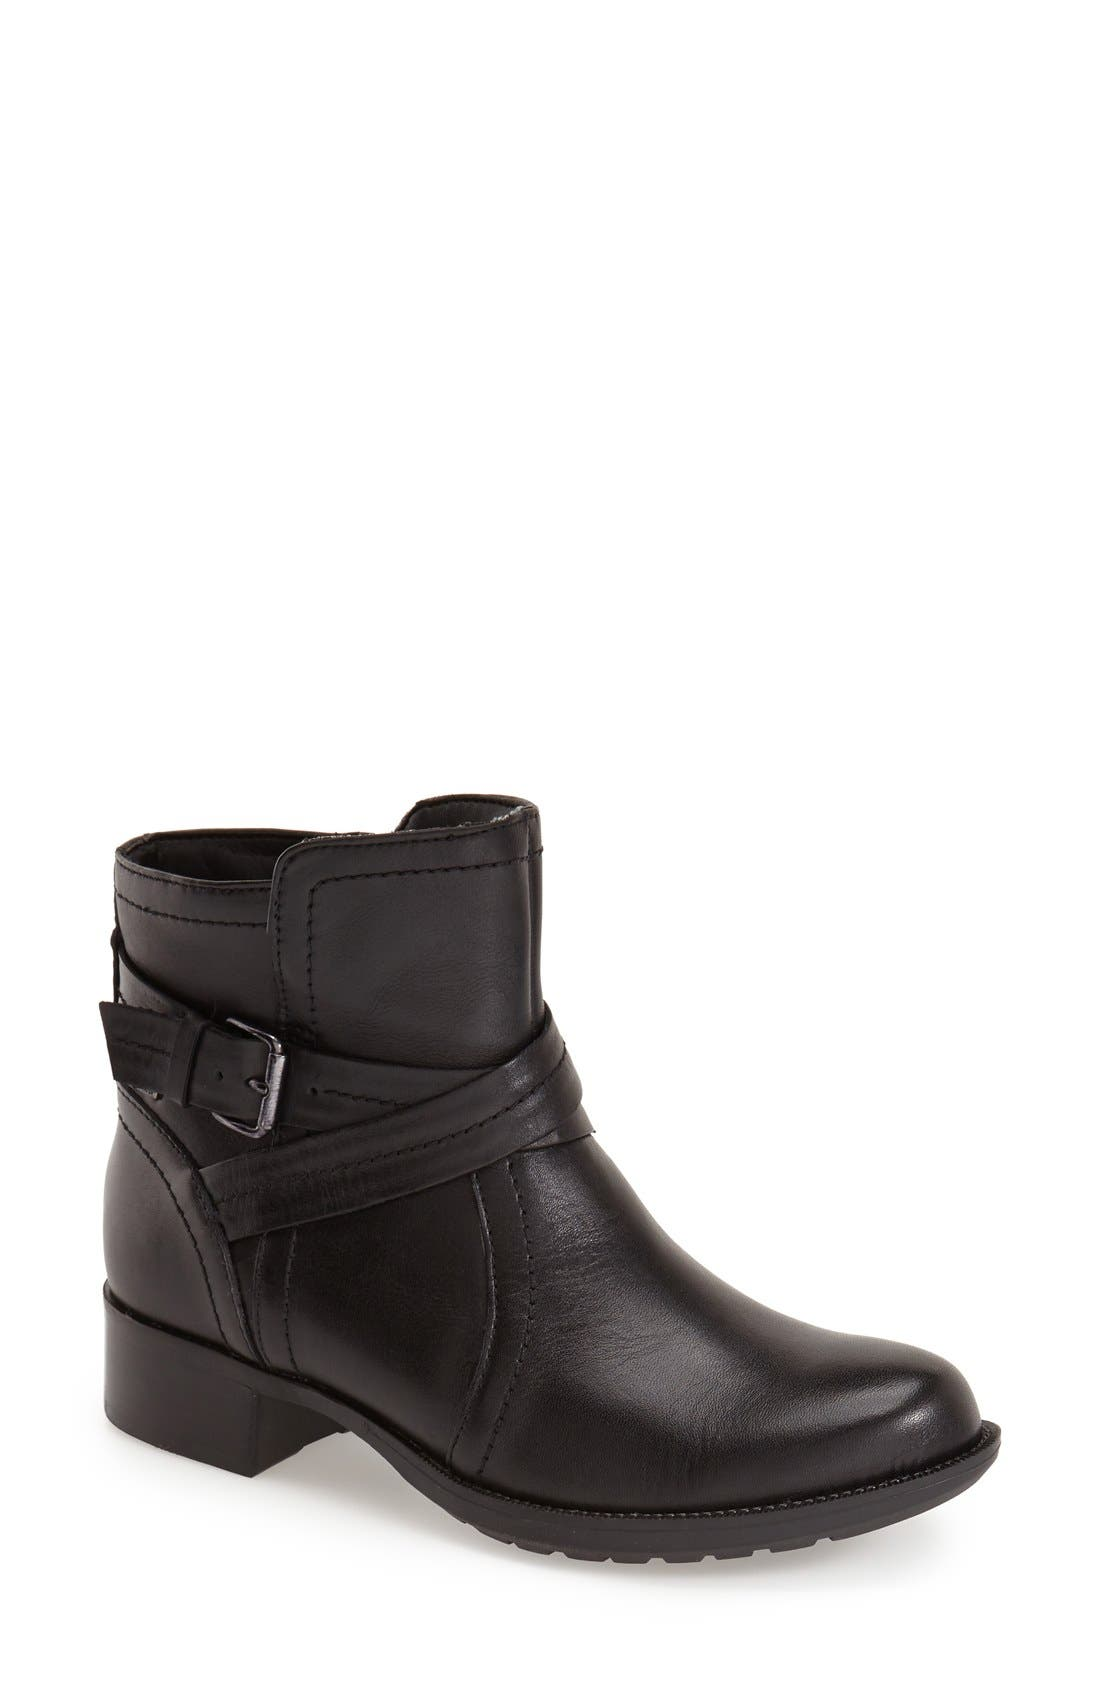 Alternate Image 1 Selected - Rockport Cobb Hill 'Caroline' Waterproof Boot (Women)